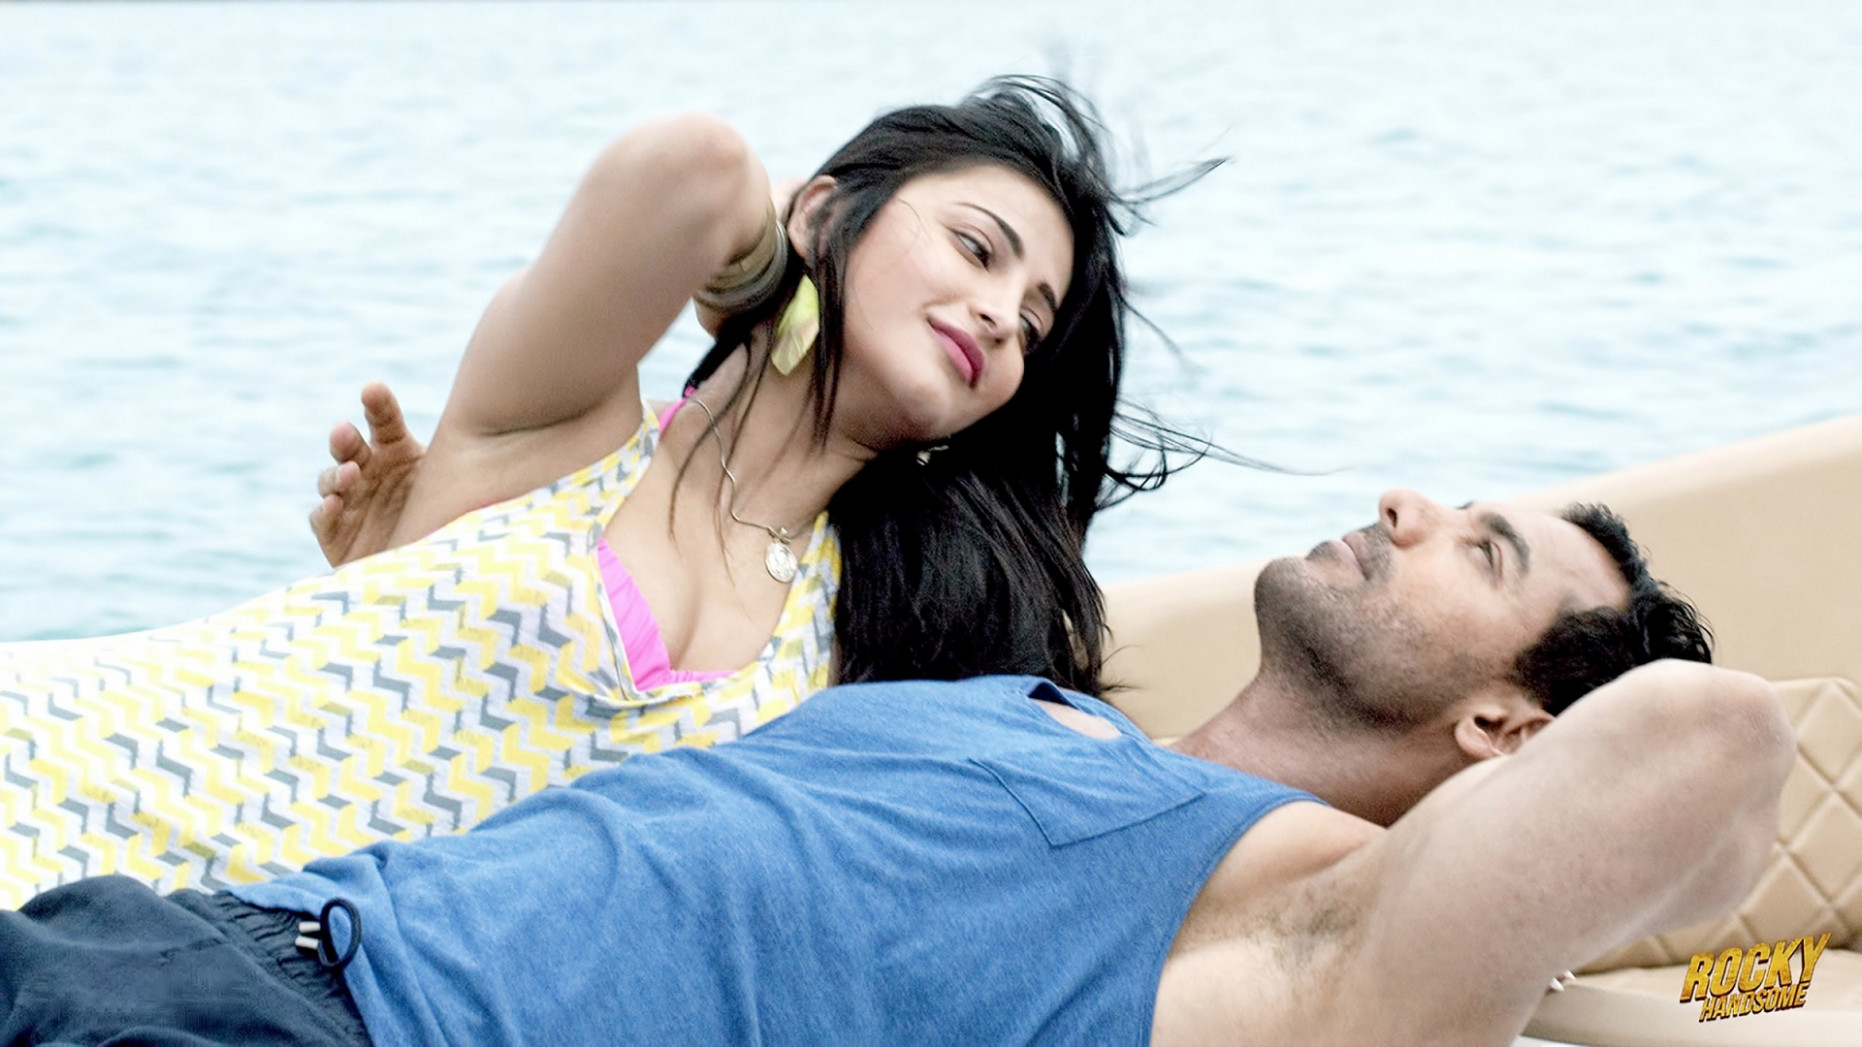 Bollywood movie romantic couple wallpapers | HD Wallpapers ...